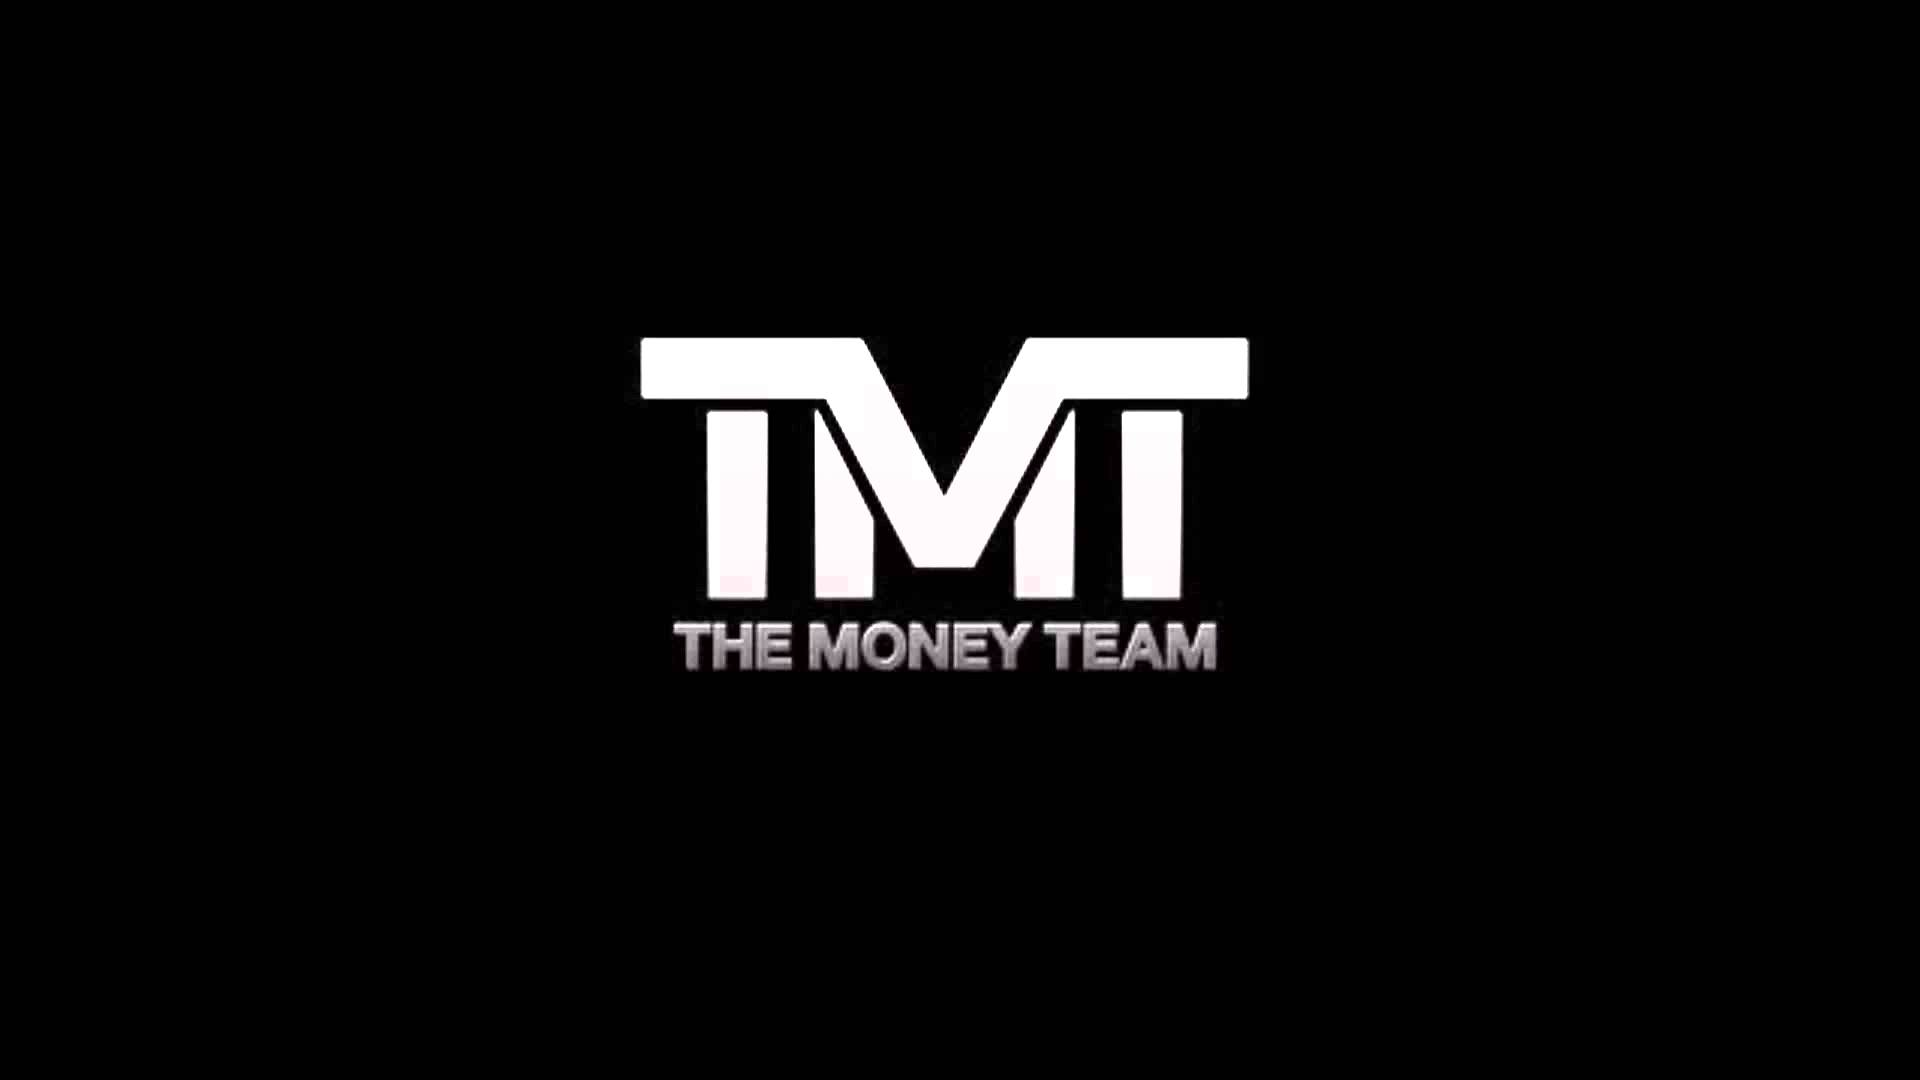 The Money Team Wallpaper